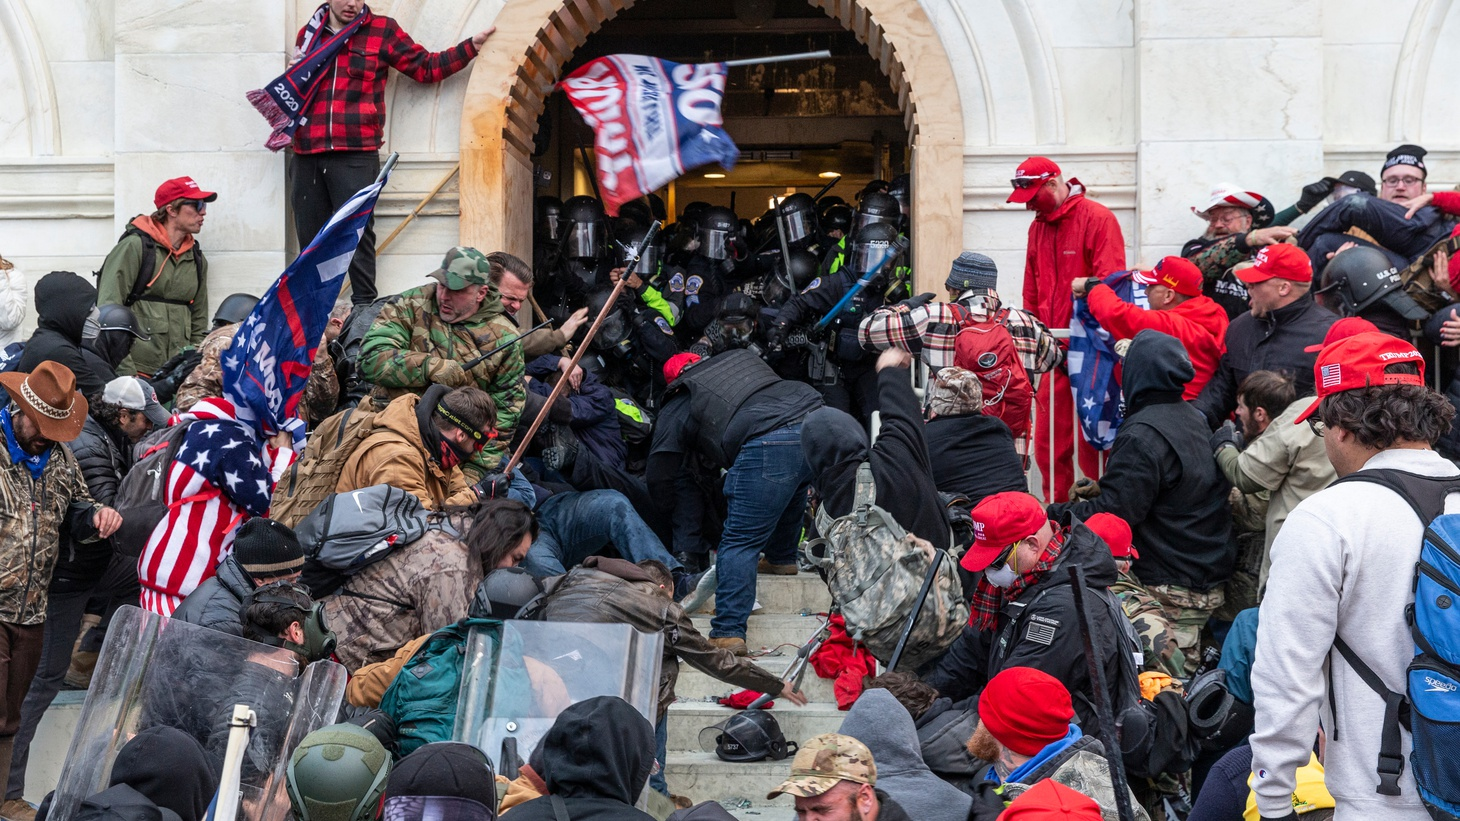 Rioters clash with police trying to enter Capitol building through the front doors.